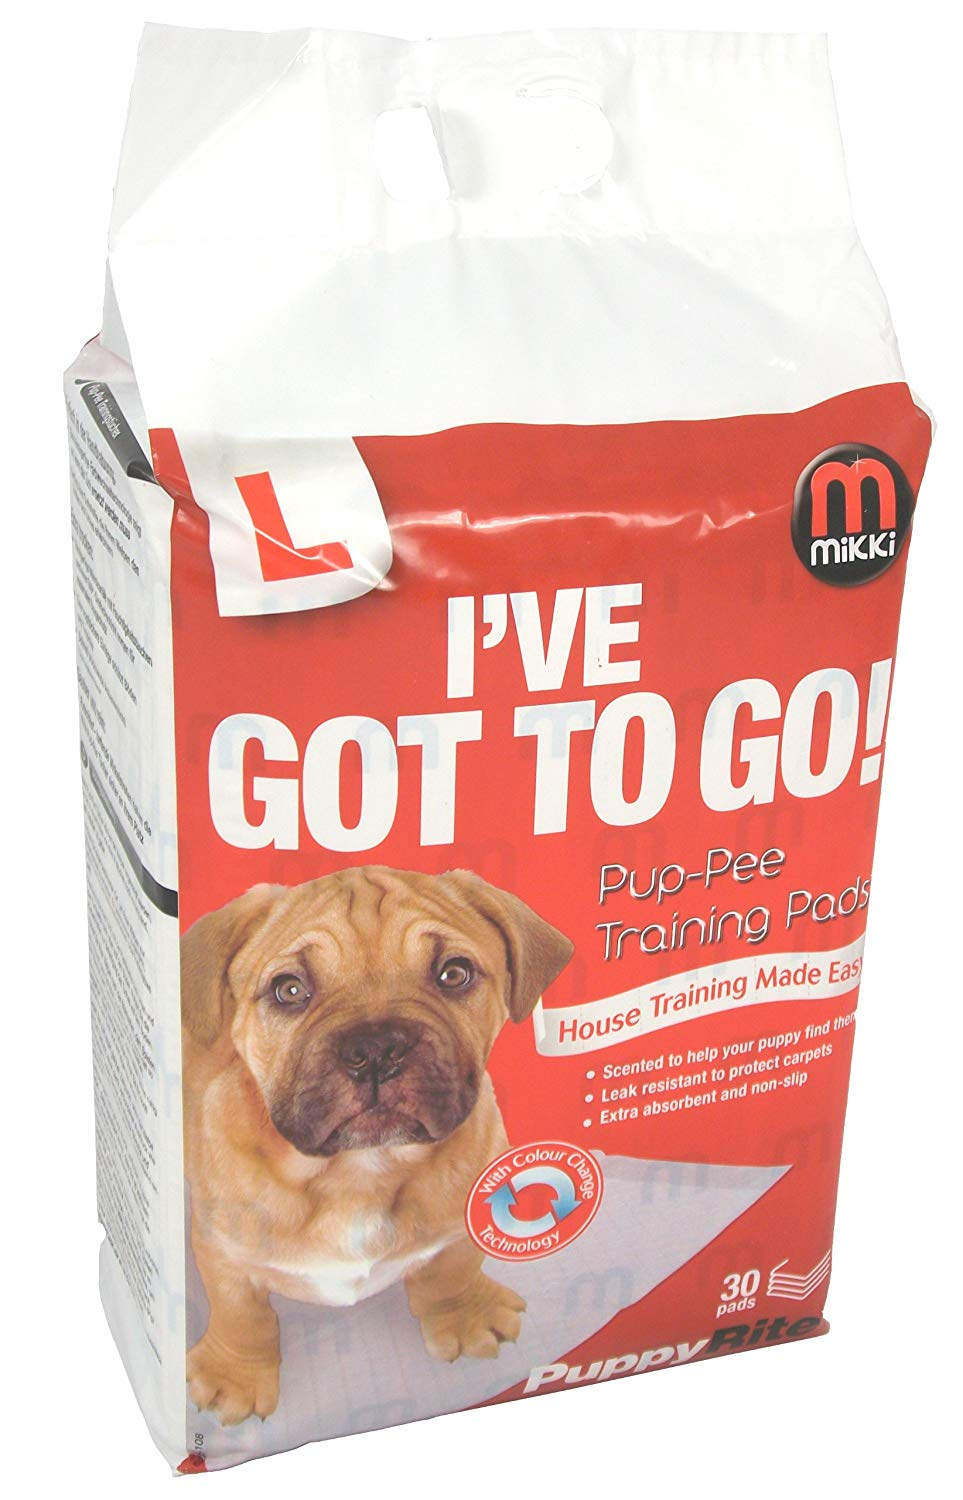 Mikki Puppy Toilet Training Pads - Pup-pee Pads